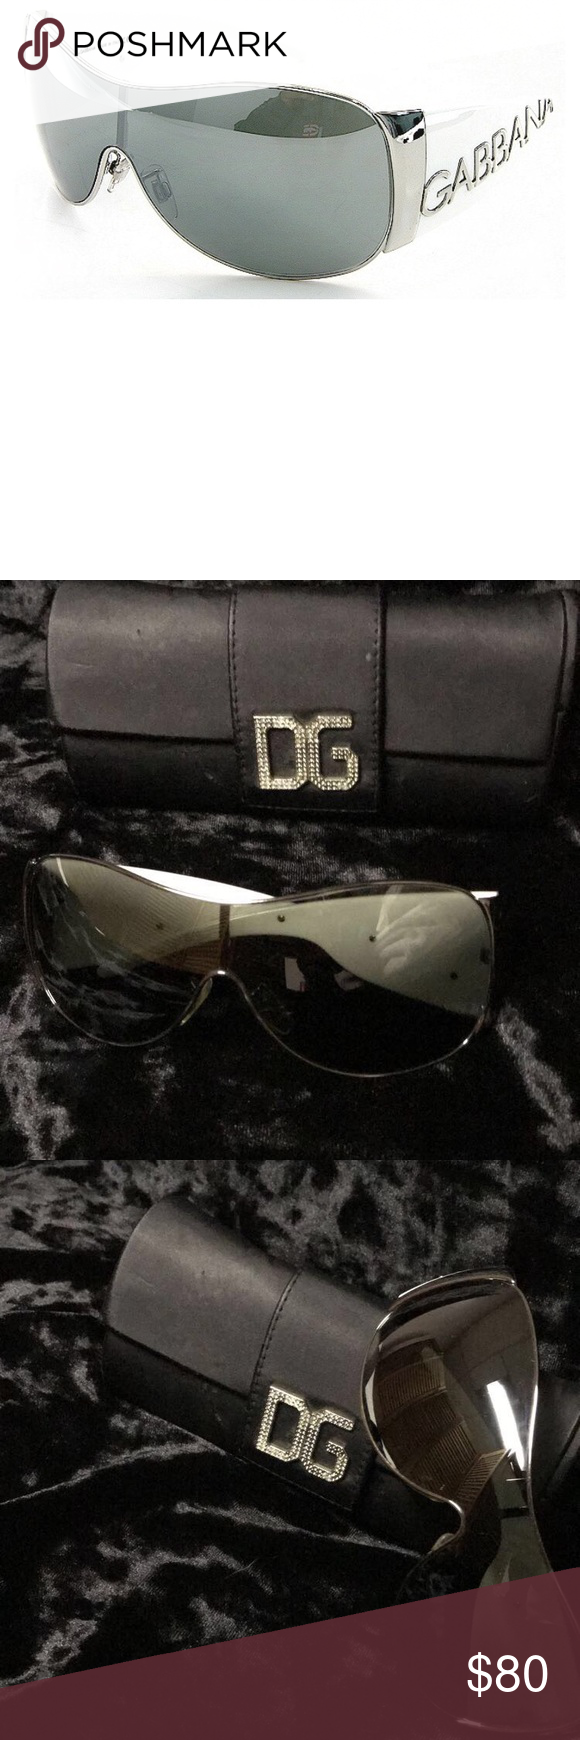 07ba2556575f Authentic Dolce   Gabbana Sunglasses Vintage Aviators Style DG 2005 05 6g  120 Made in Italy 🇮🇹 Comes with case Few light scratches